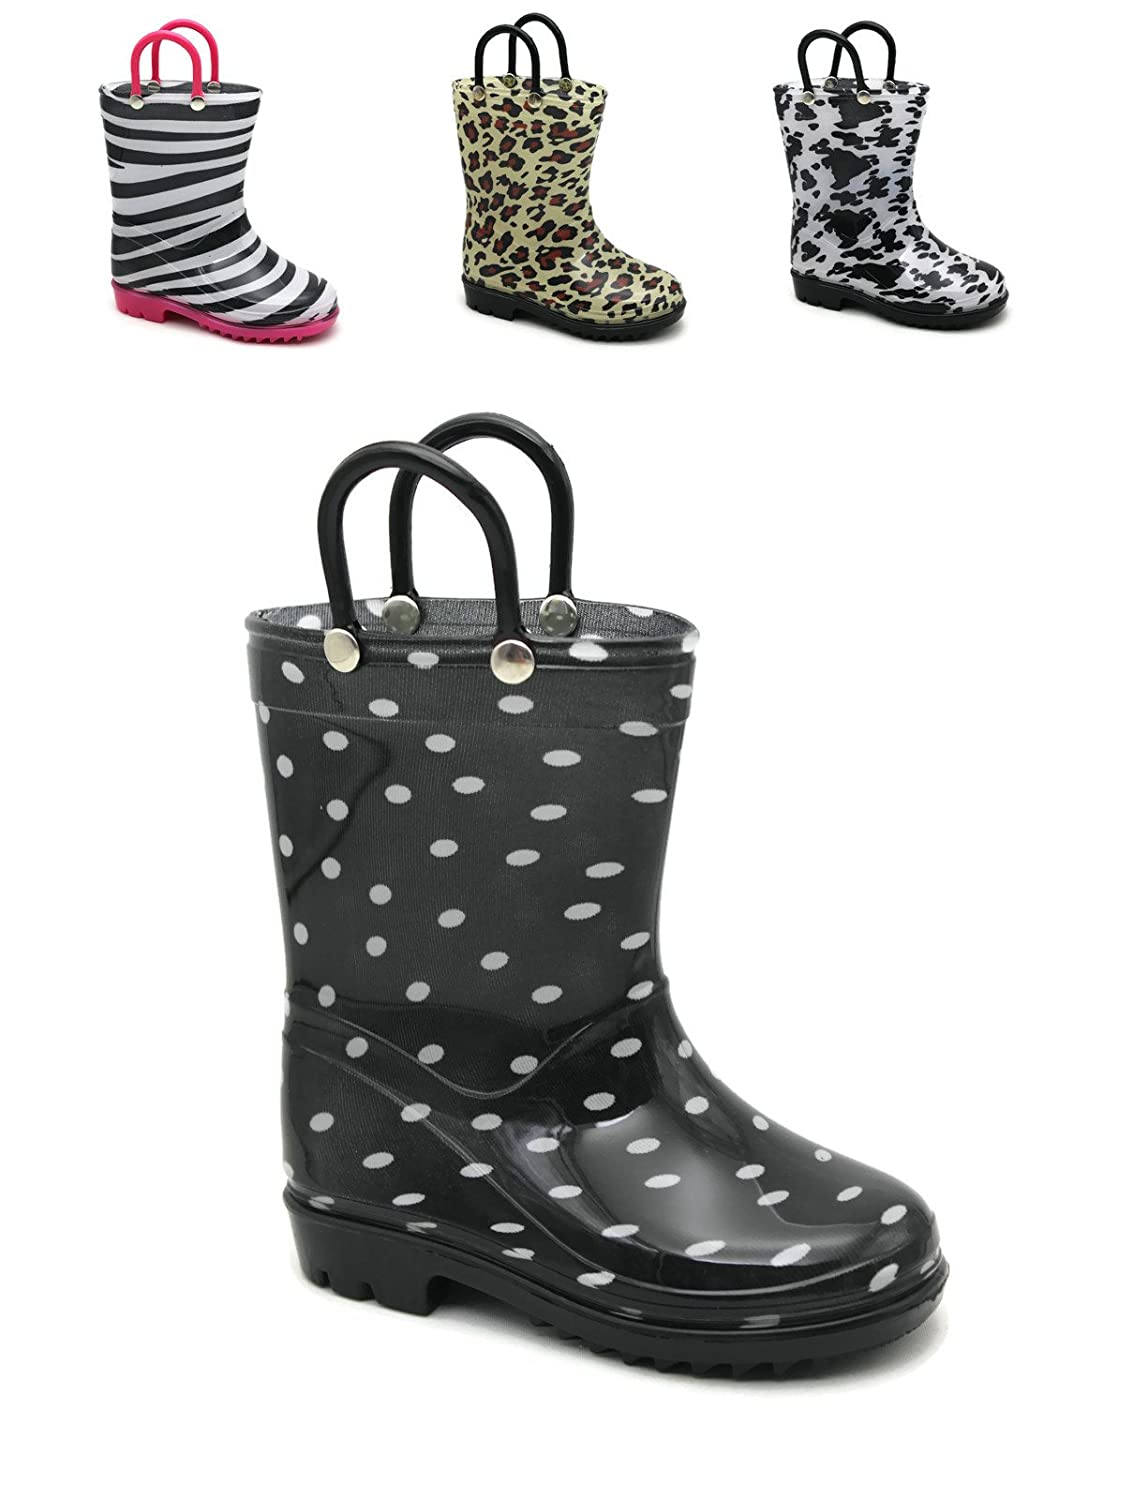 Storm Kidz Kids Girls Printed Rainboots Assorted Animal Prints Toddler/Little Kid/Big Kid Sizes STK8000